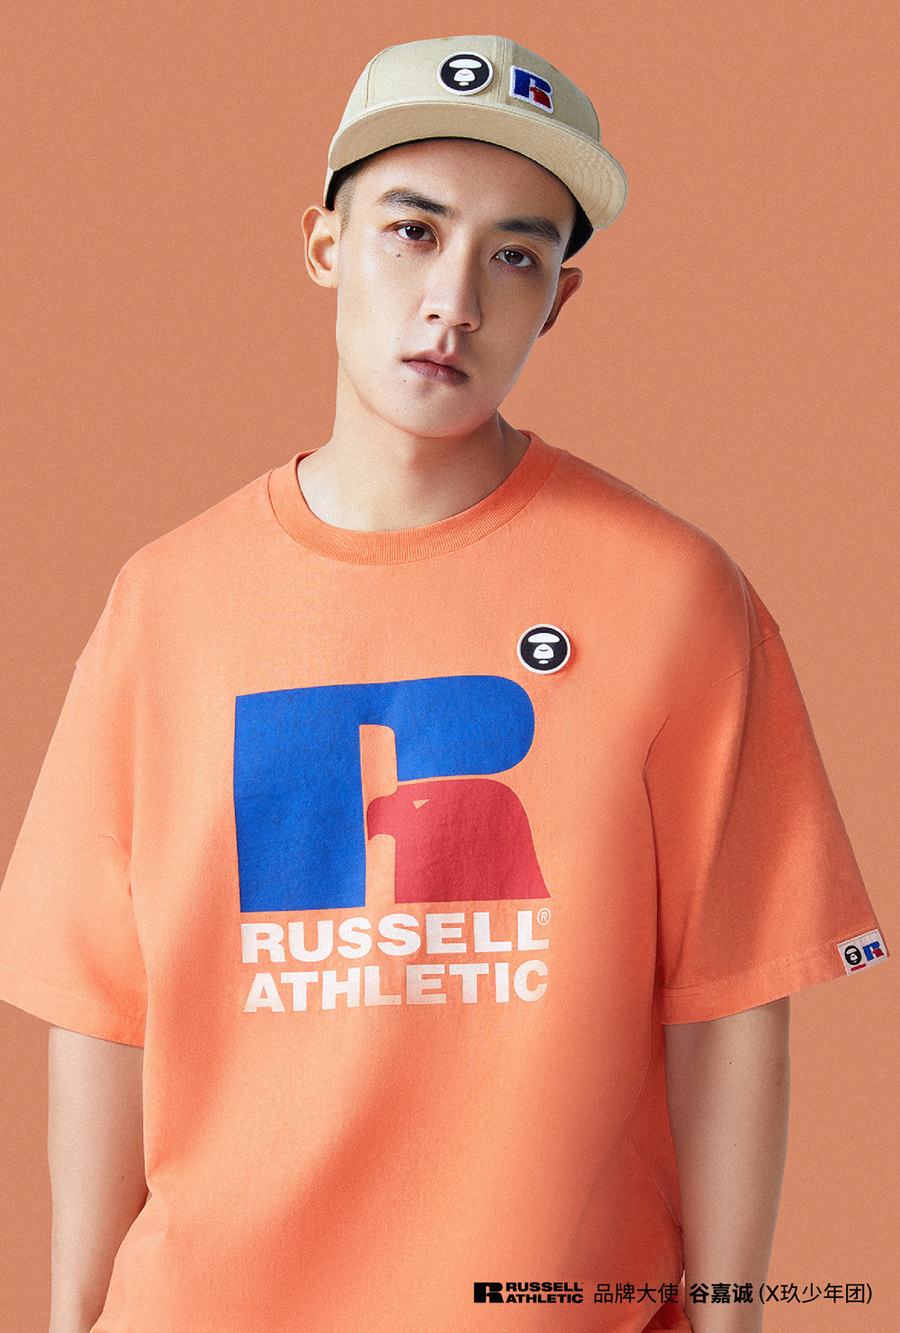 RUSSELL ATHLETIC,AAPENOW,AAPE,  复古运动风!RUSSELL ATHLETIC x AAPENOW 春夏新品即将发售!